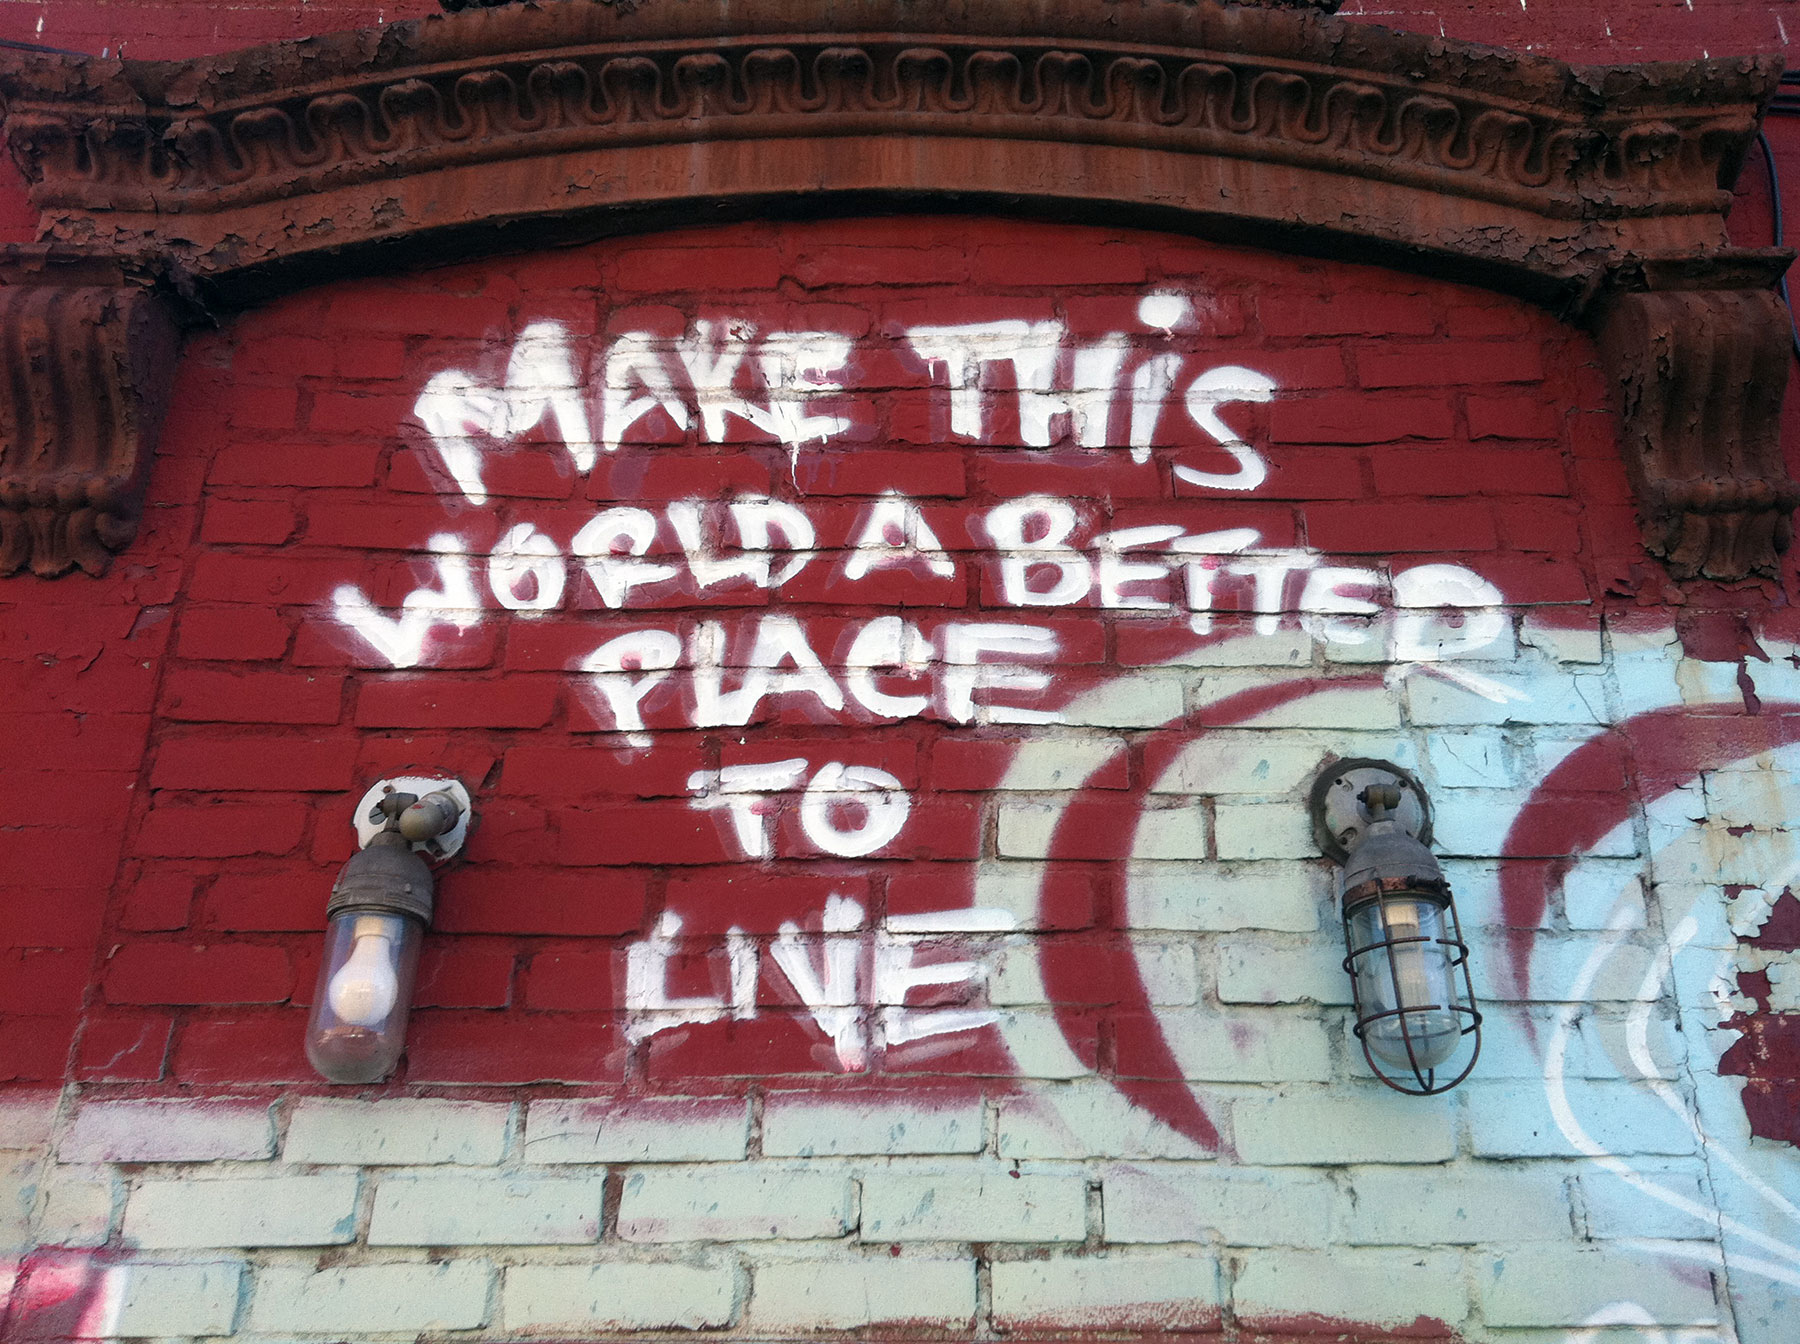 World a better place to live essay